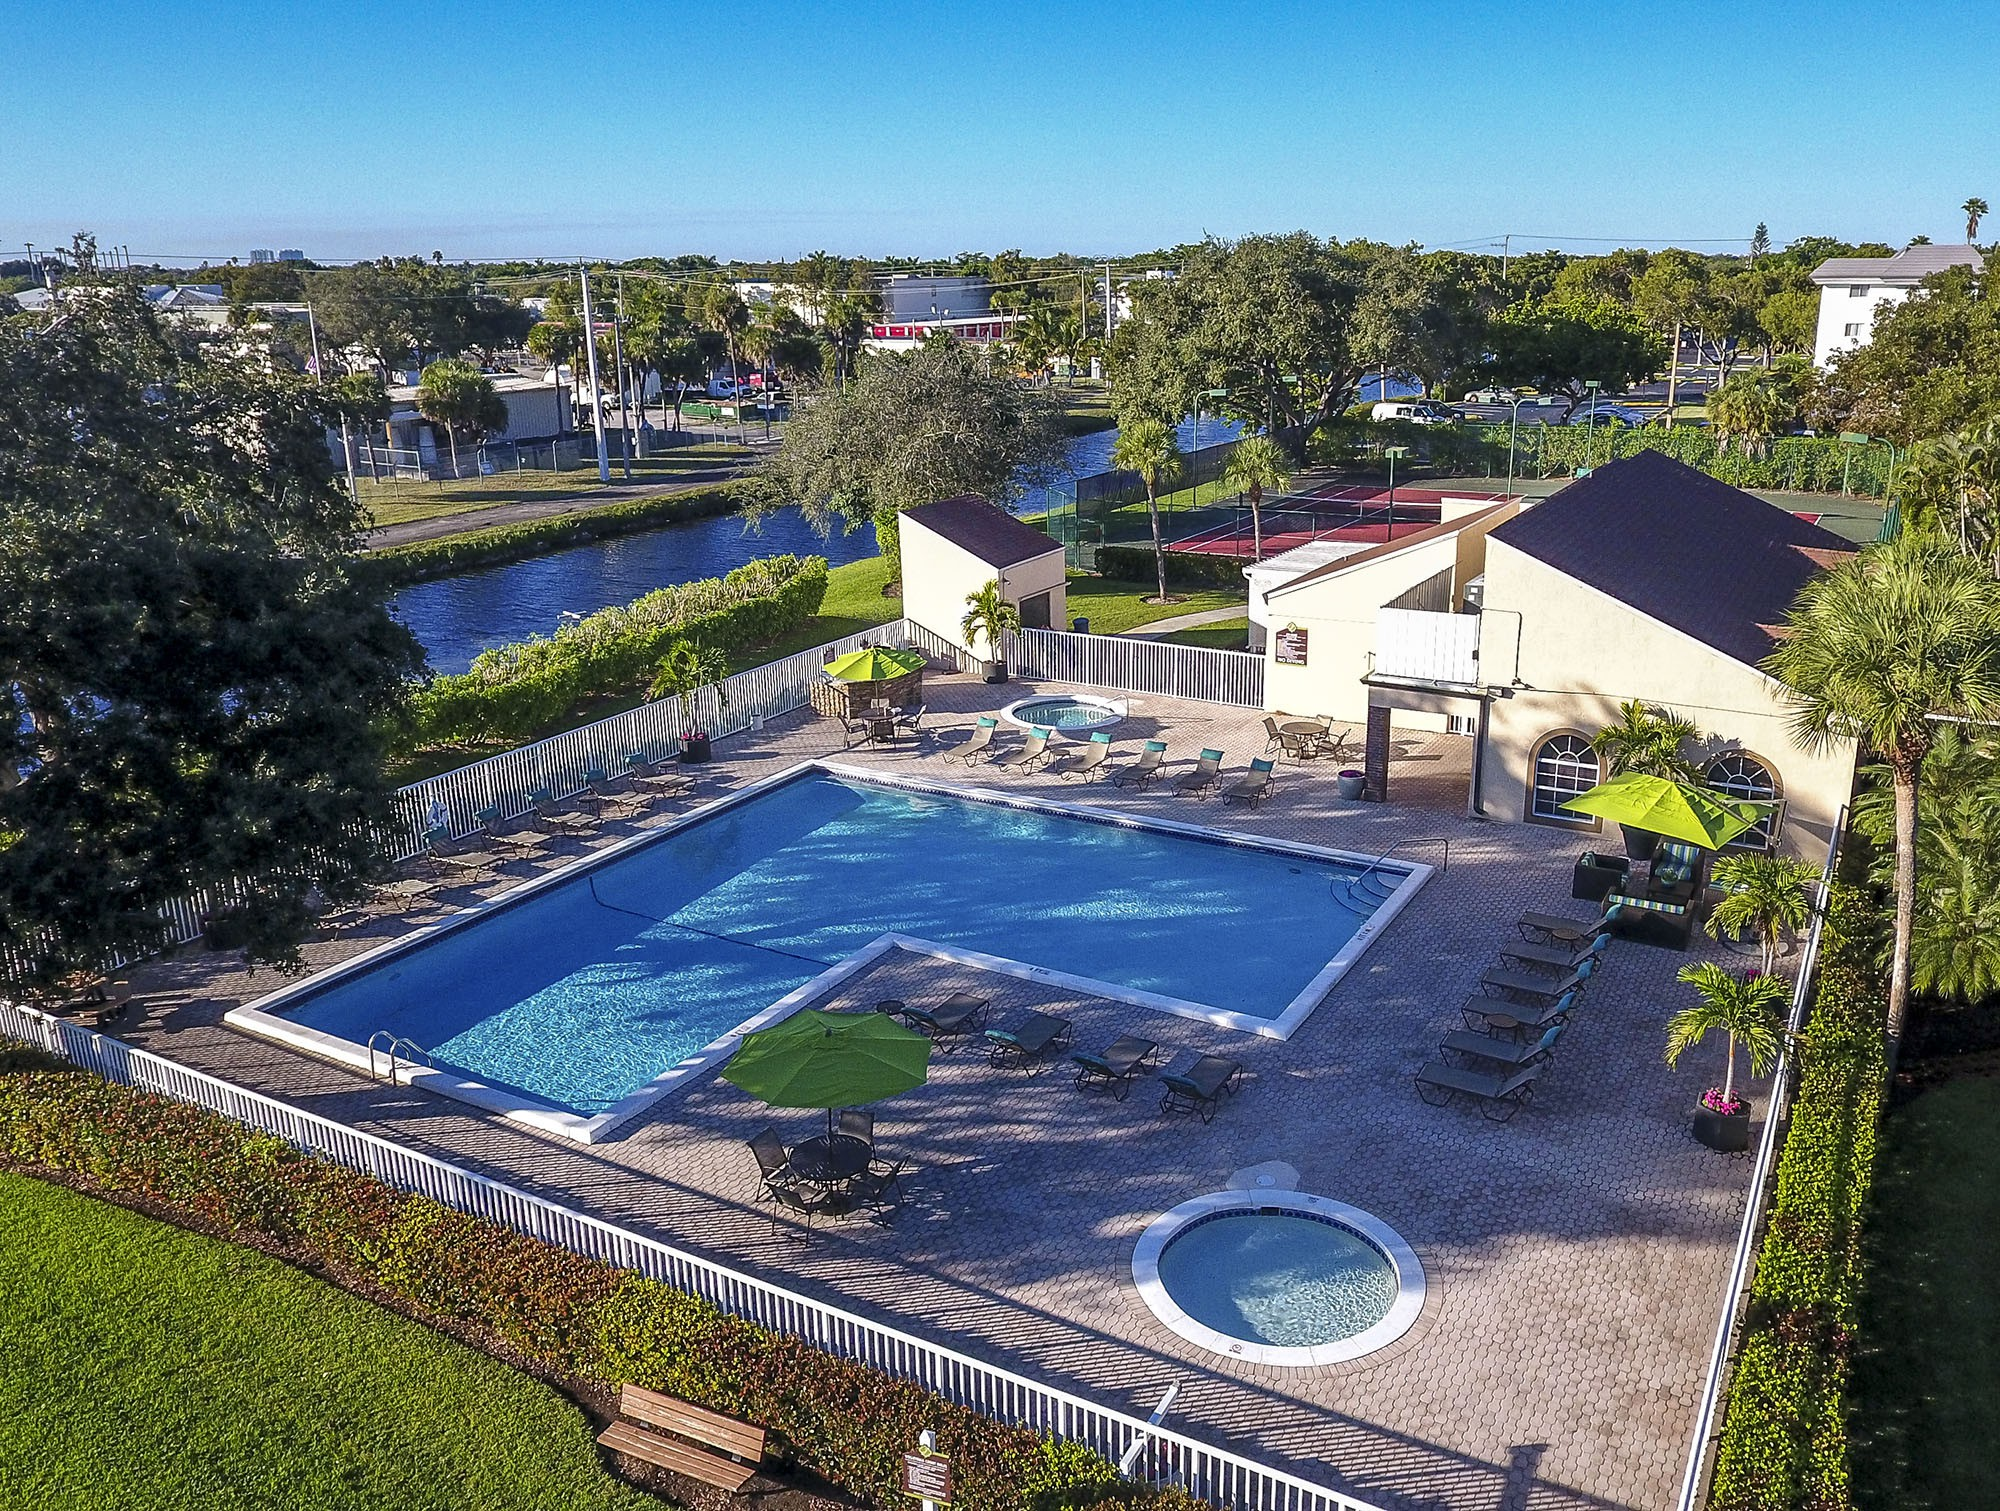 Apartments Near AIU South Florida Jacaranda Village At Plantation for American Intercontinental University Students in Weston, FL